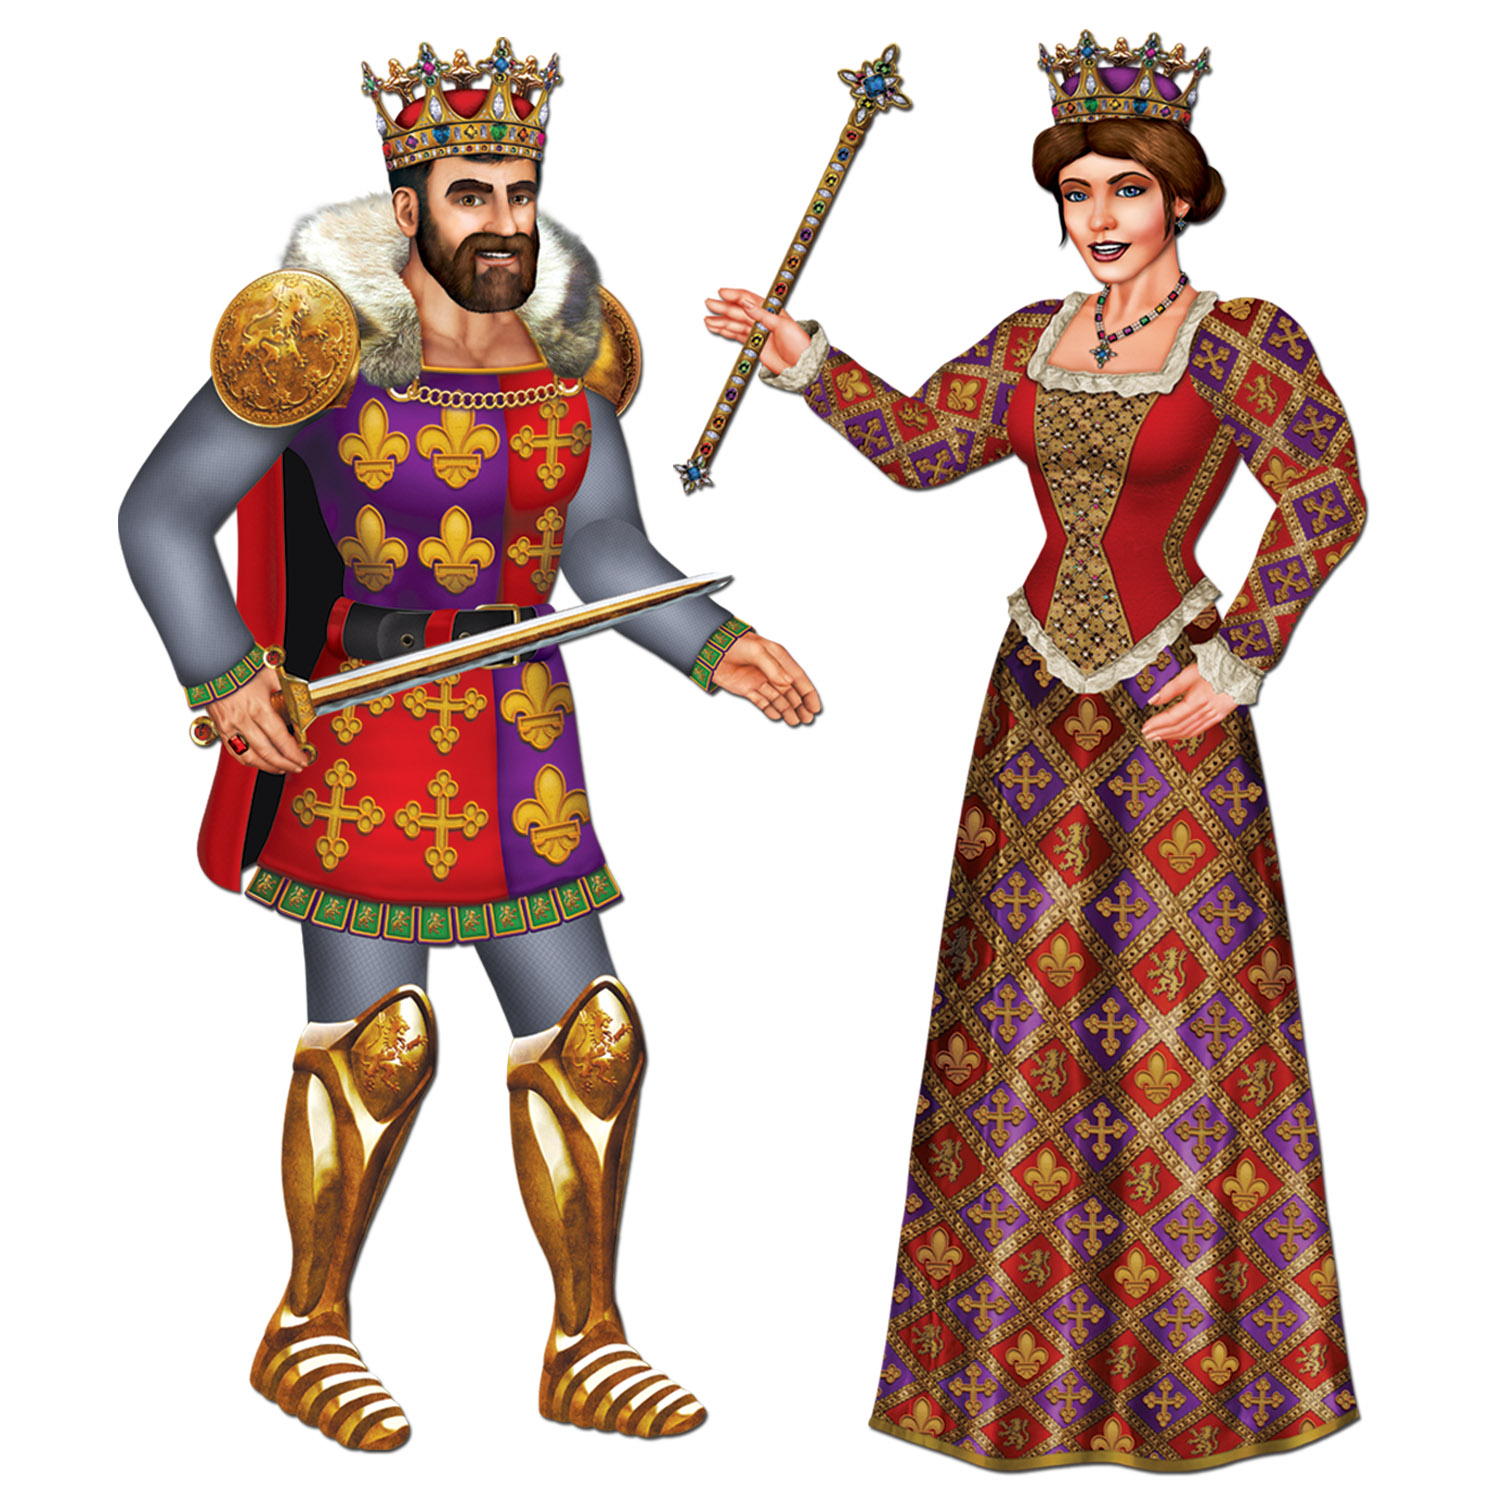 Jointed Royal King & Queen (Pack of 12) Jointed Royal King & Queen, decoration, medieval, king, queen, new years eve, halloween, wholesale, inexpensive, bulk